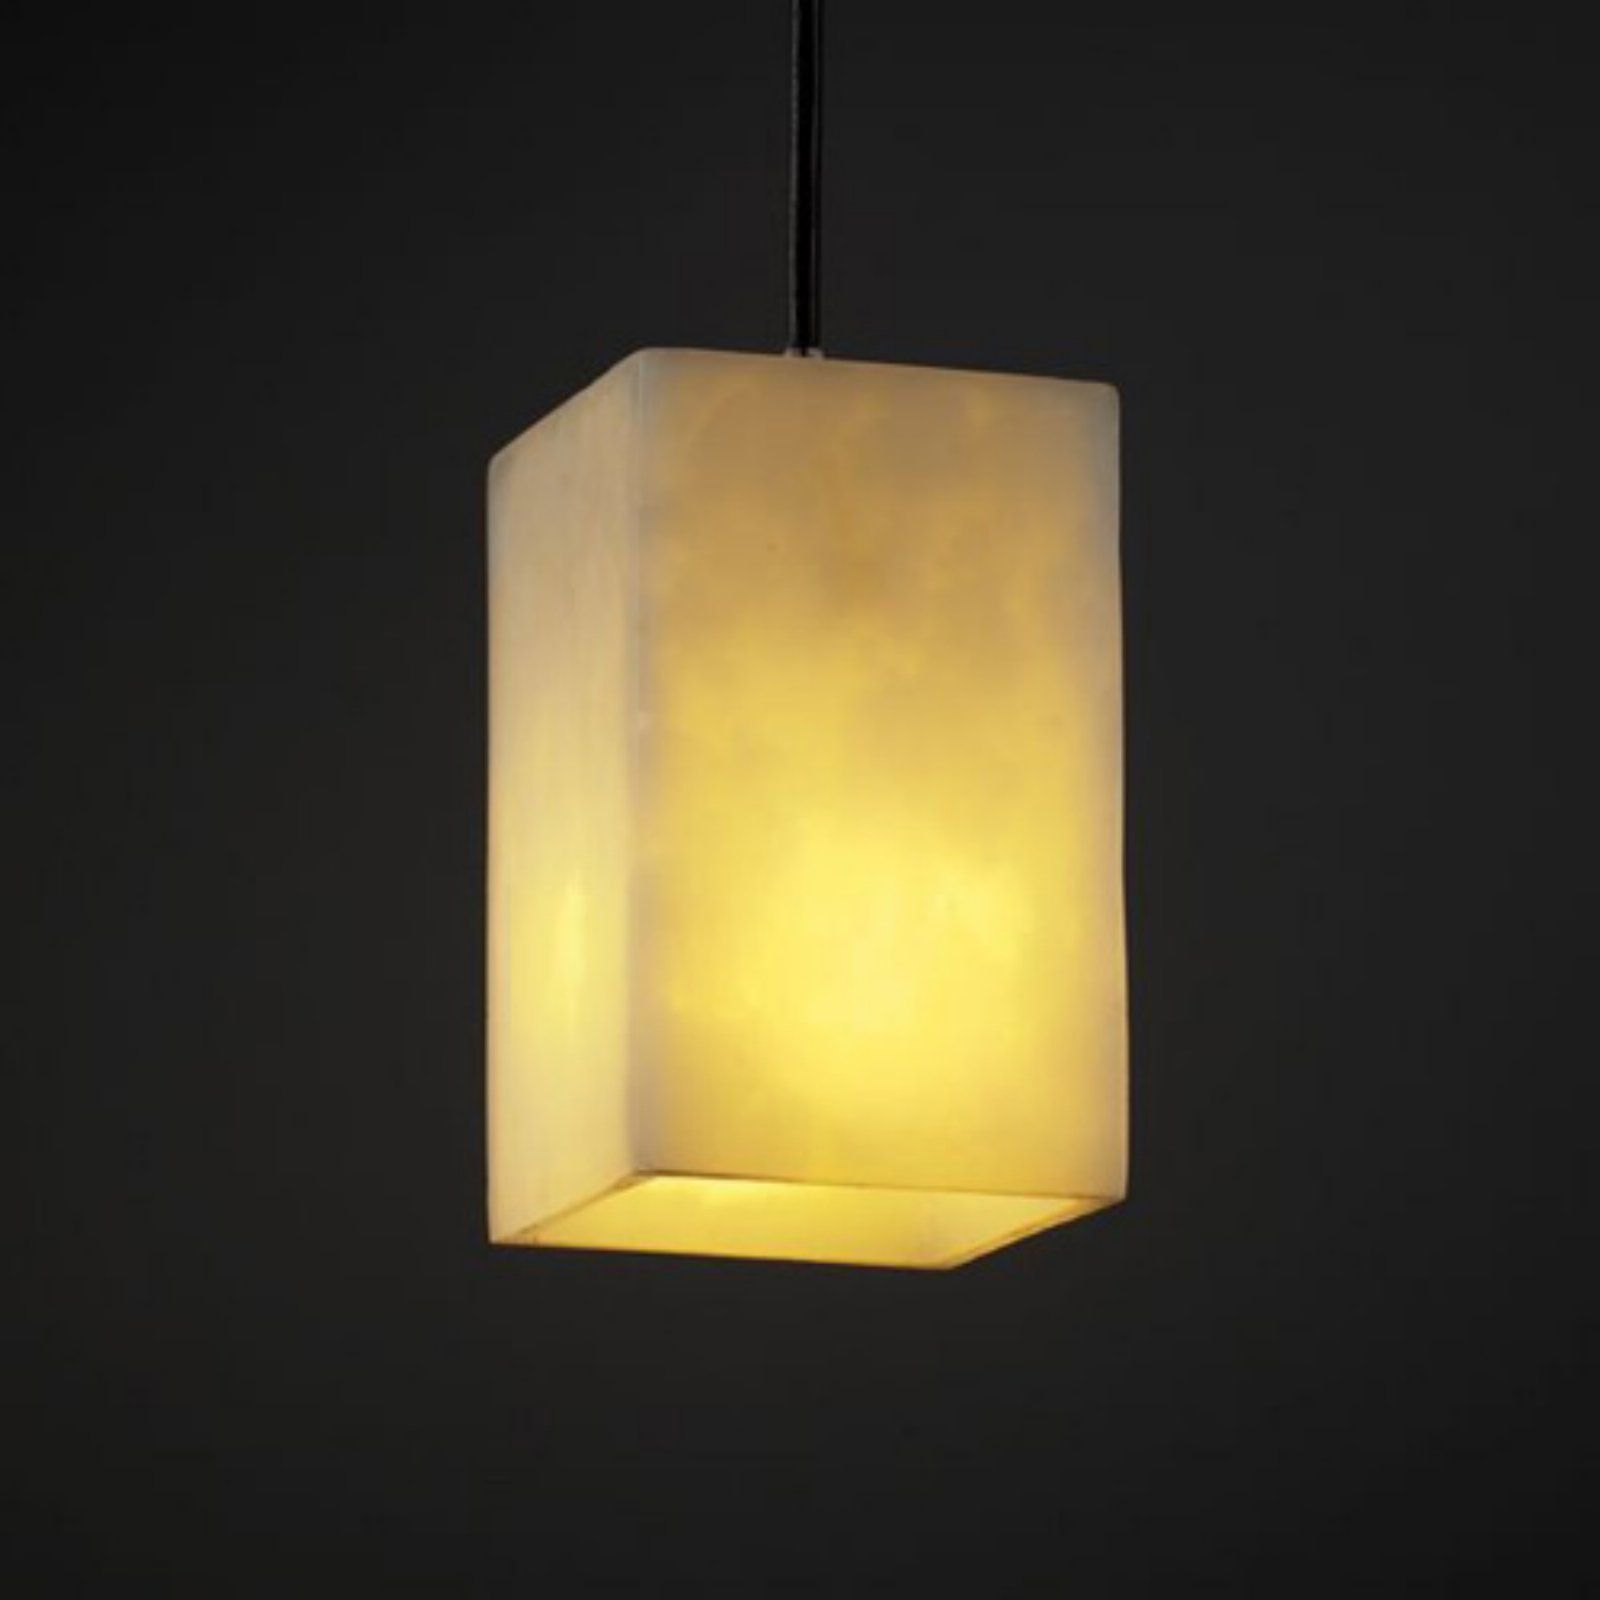 Justice Design Clouds Cld 8816 15 1 Light Small Pendant Square With Flat Rim Shade Justice Design Ceiling Pendant Lights Diffused Light